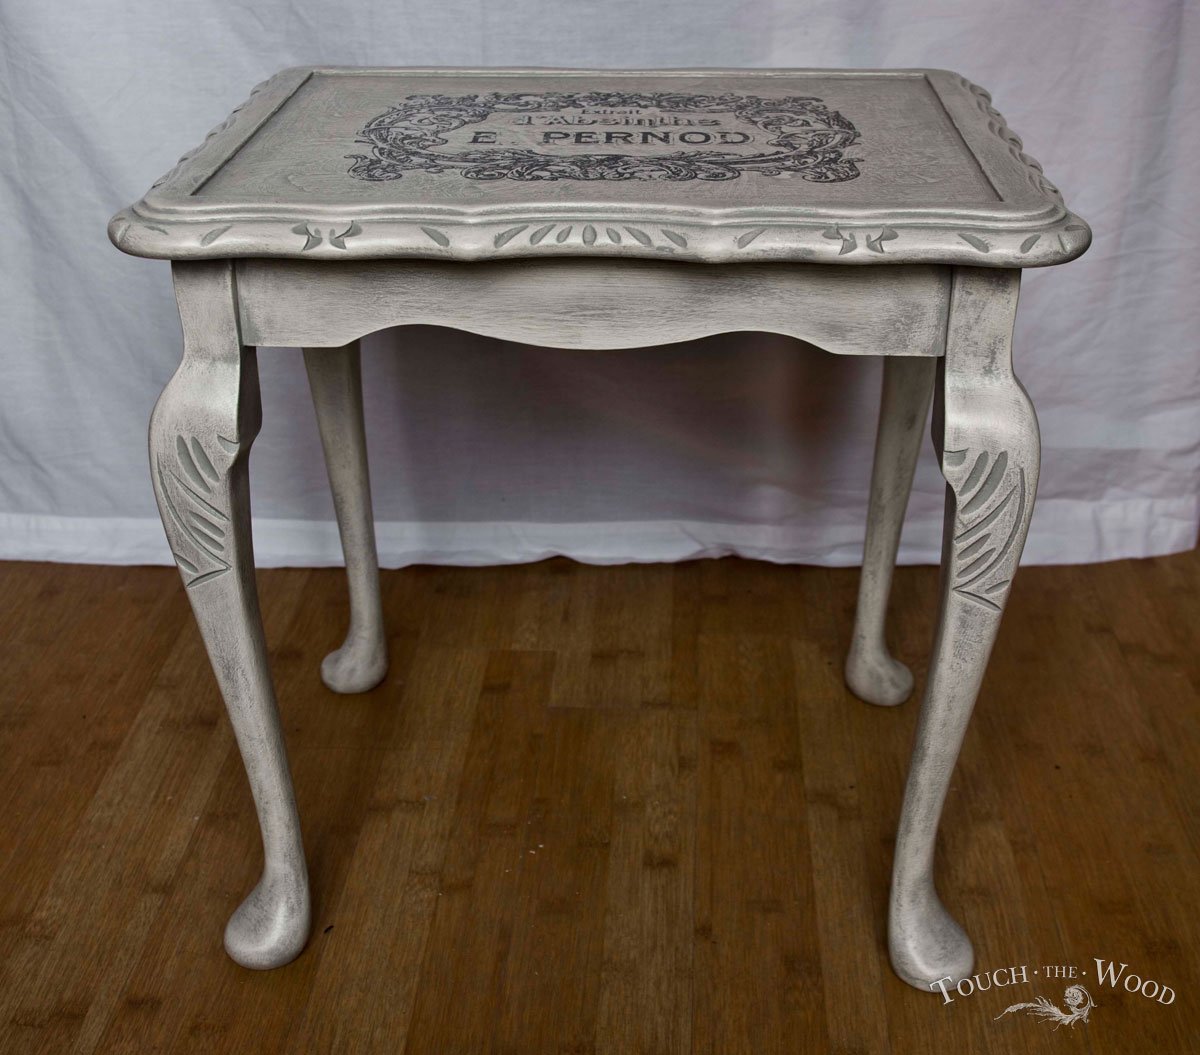 20140212_vintage-shabby-chic-nest-table-single05_01